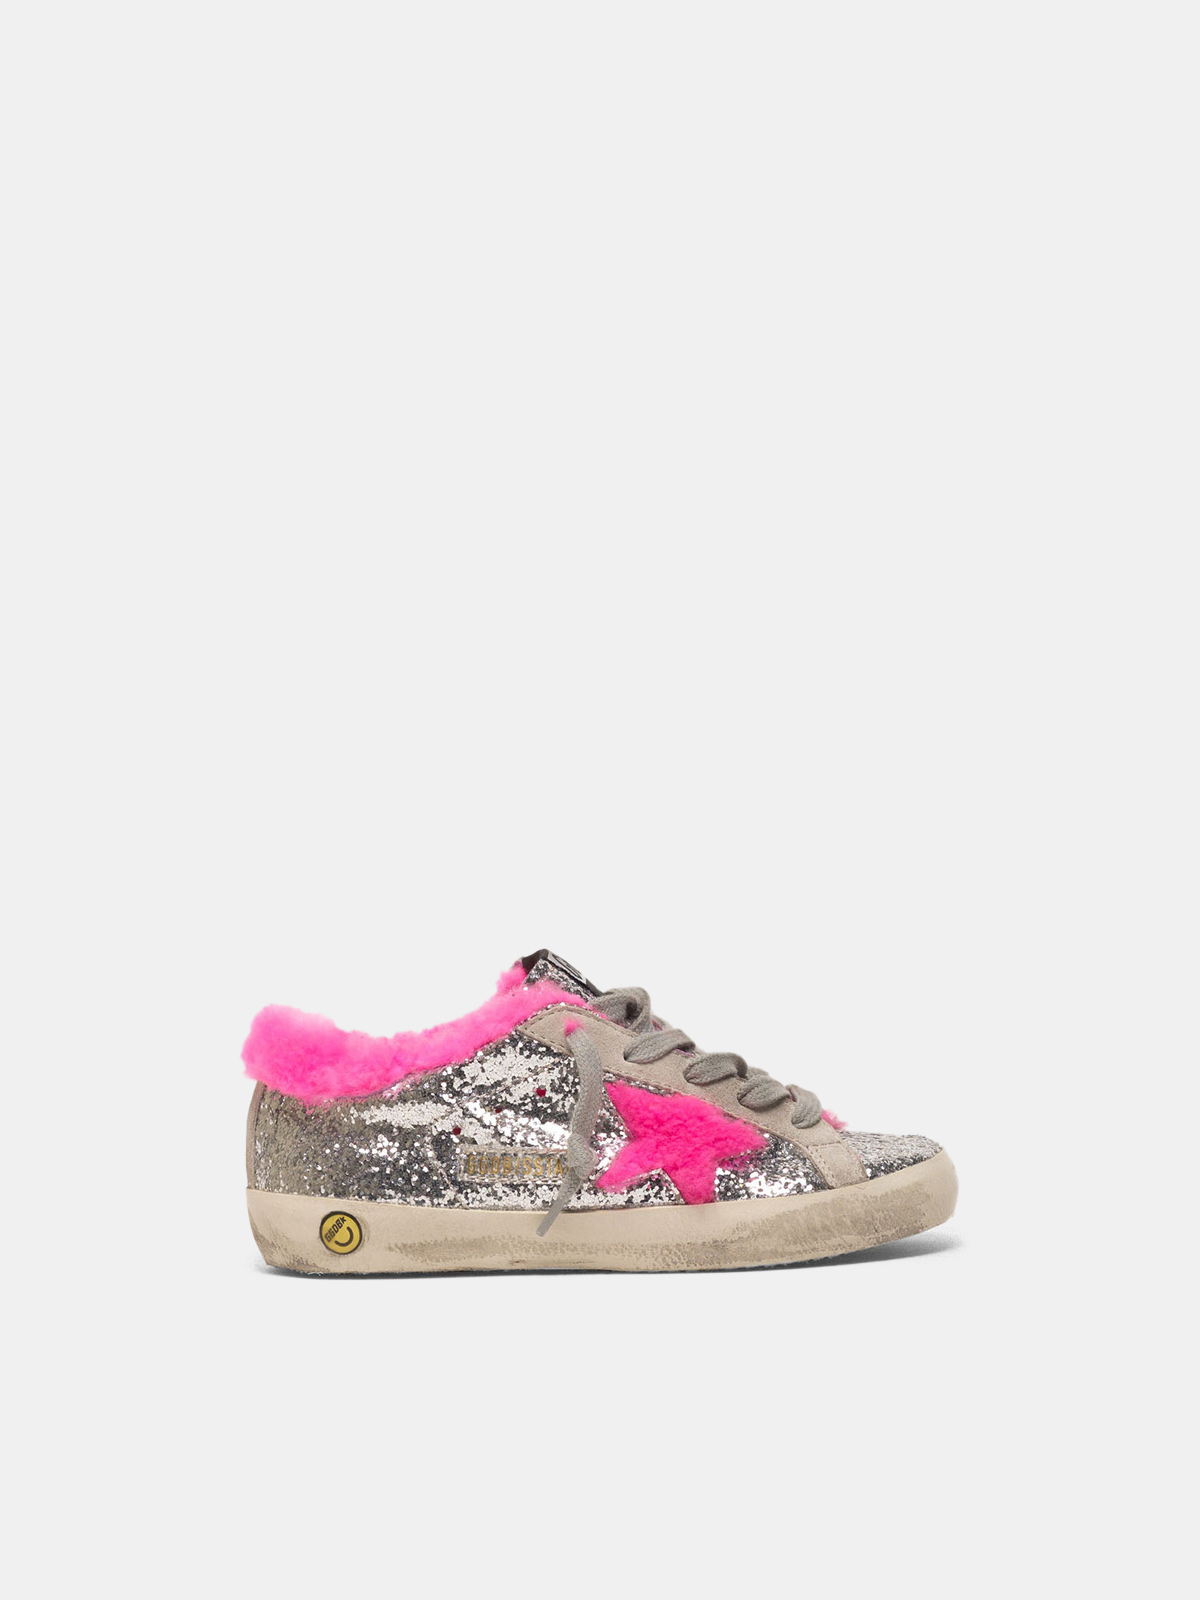 Golden Goose - Super-Star sneakers in glitter with fuchsia shearling interior in